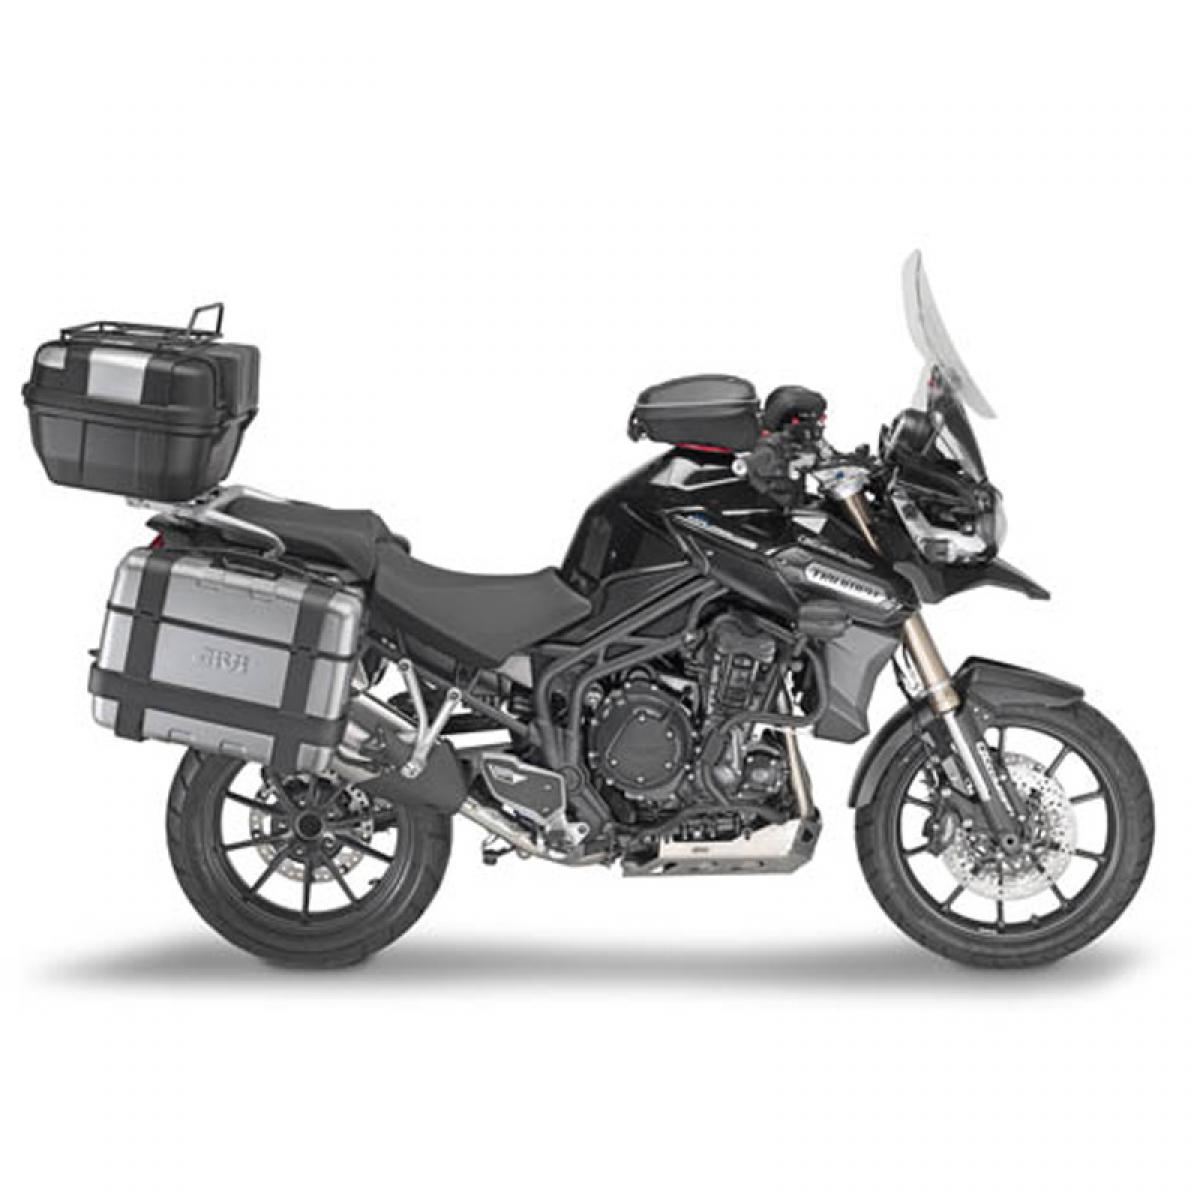 givi sra6403 aluminium rear monokey rack for triumph tiger. Black Bedroom Furniture Sets. Home Design Ideas